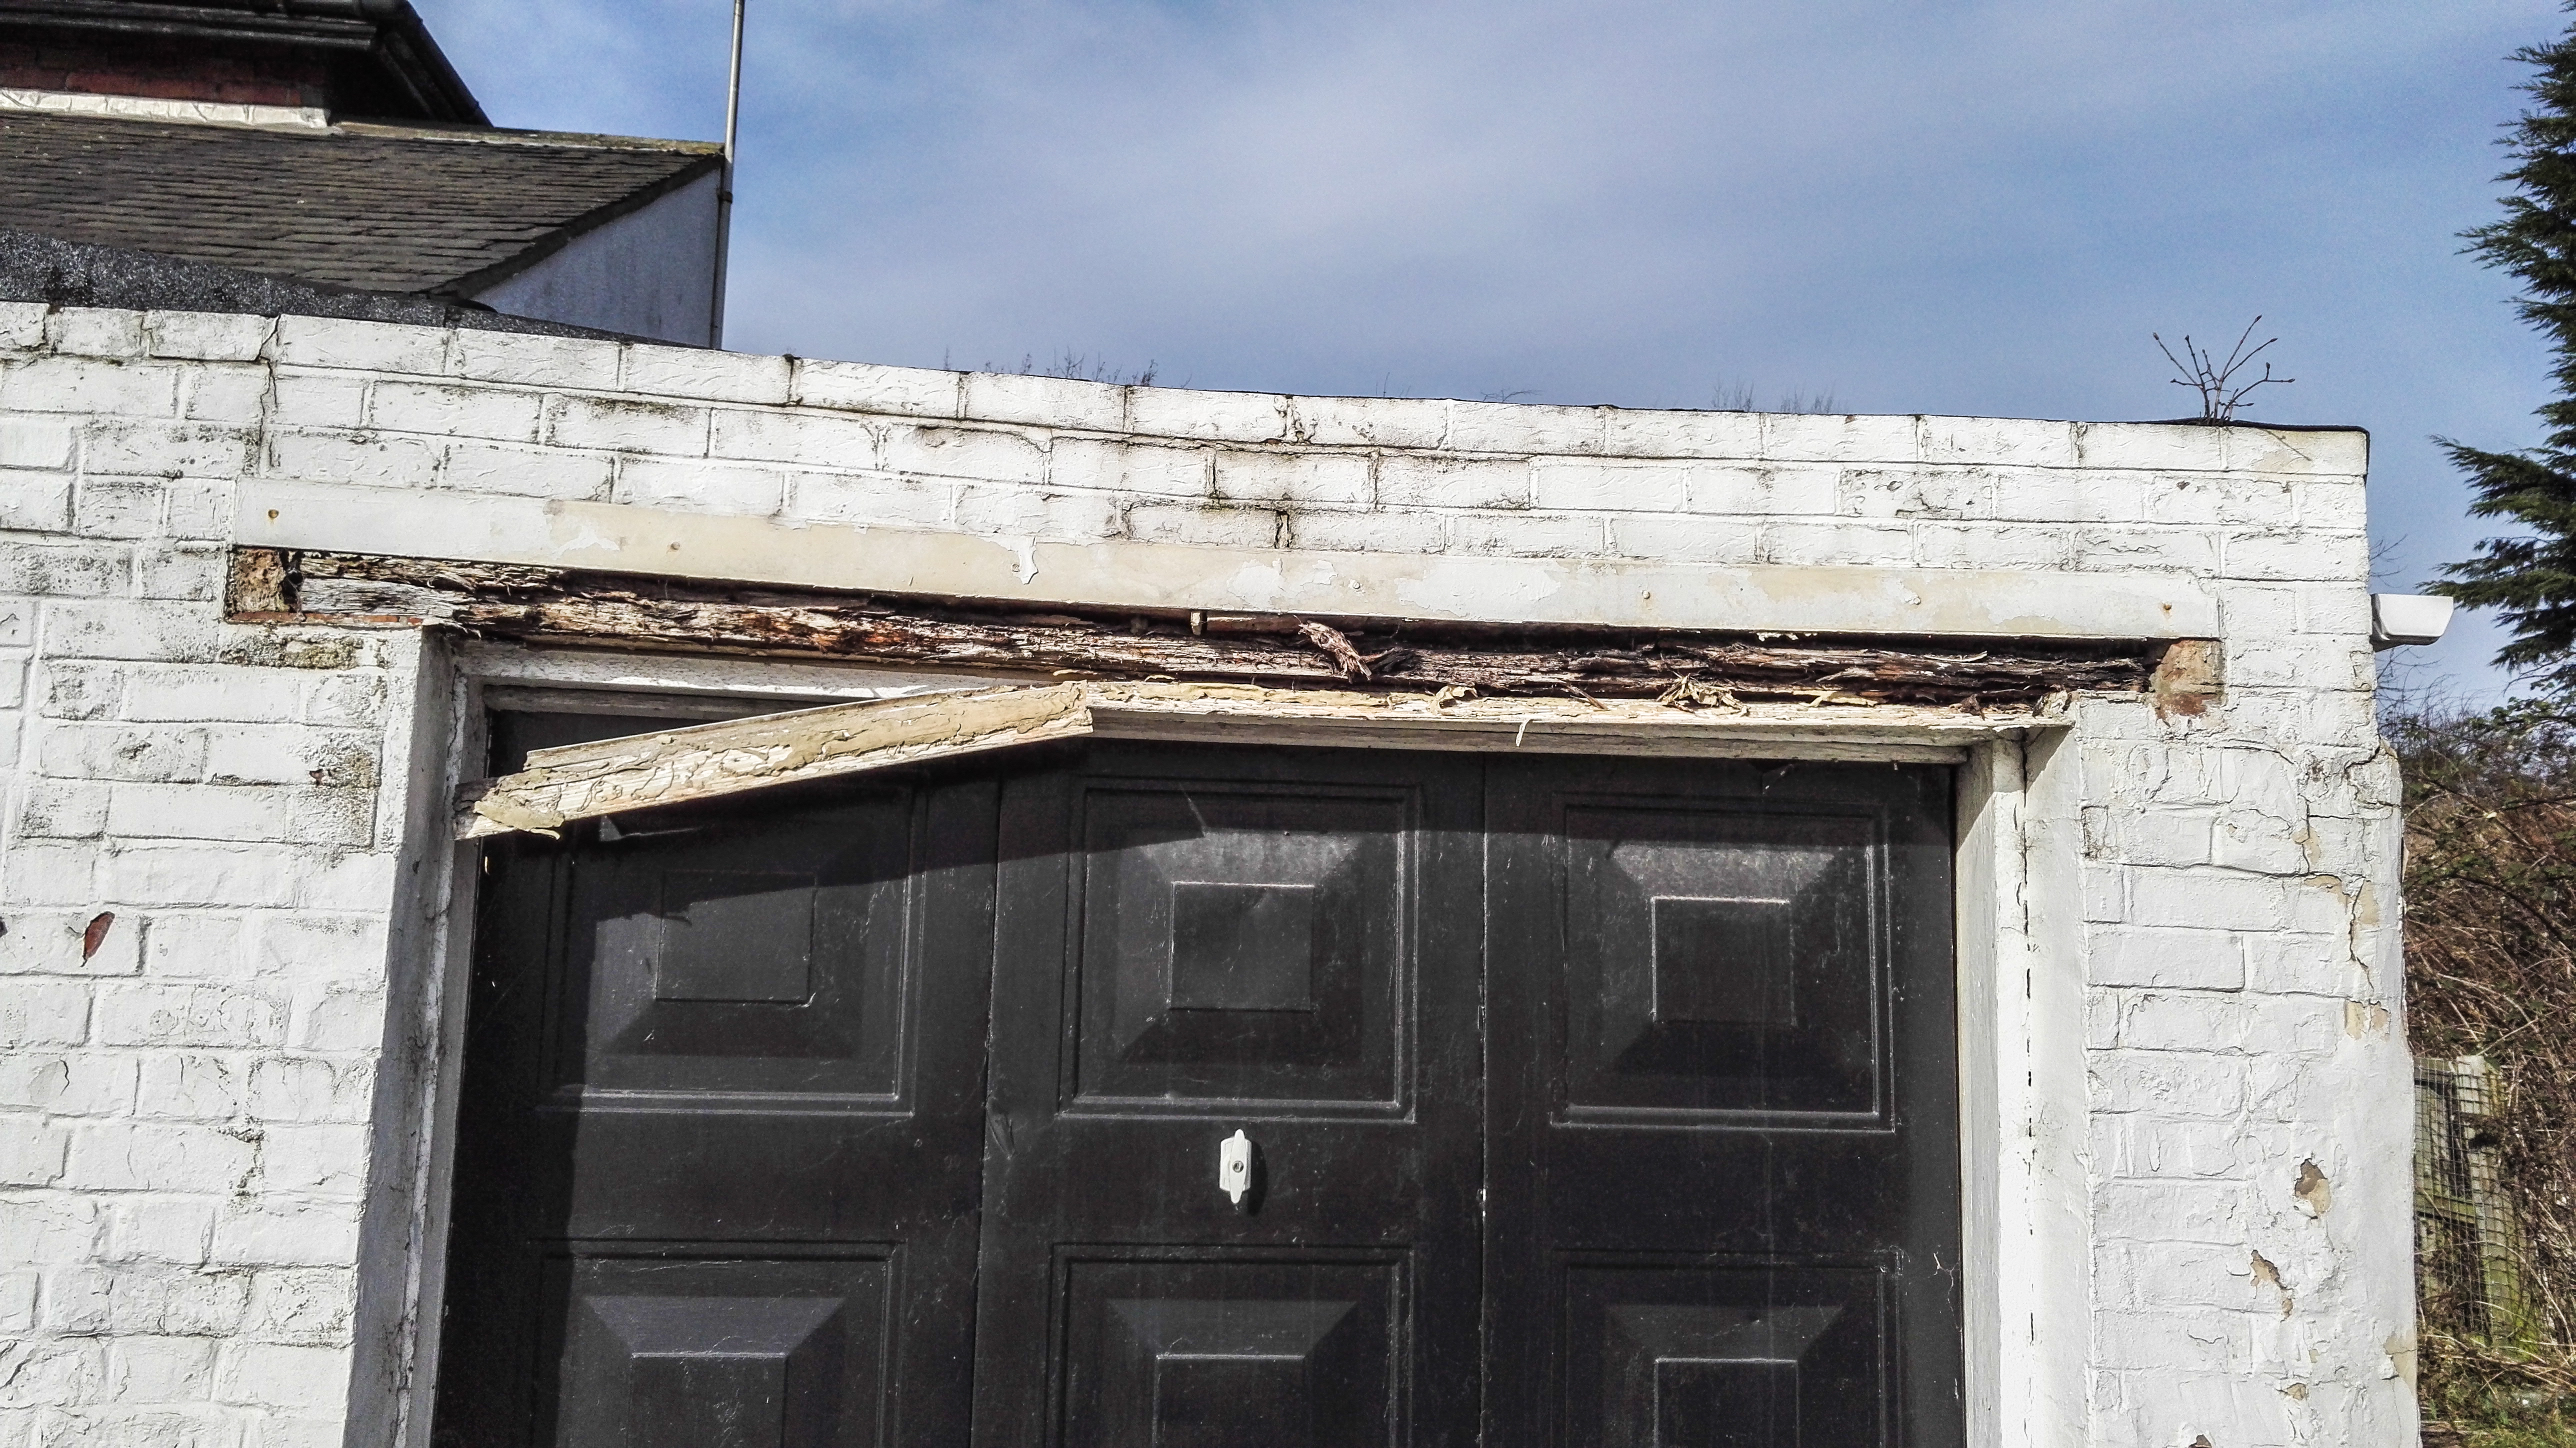 Ashtons Handyman Services & Lintel replaced over garage door | Ashtons Handyman Property Services